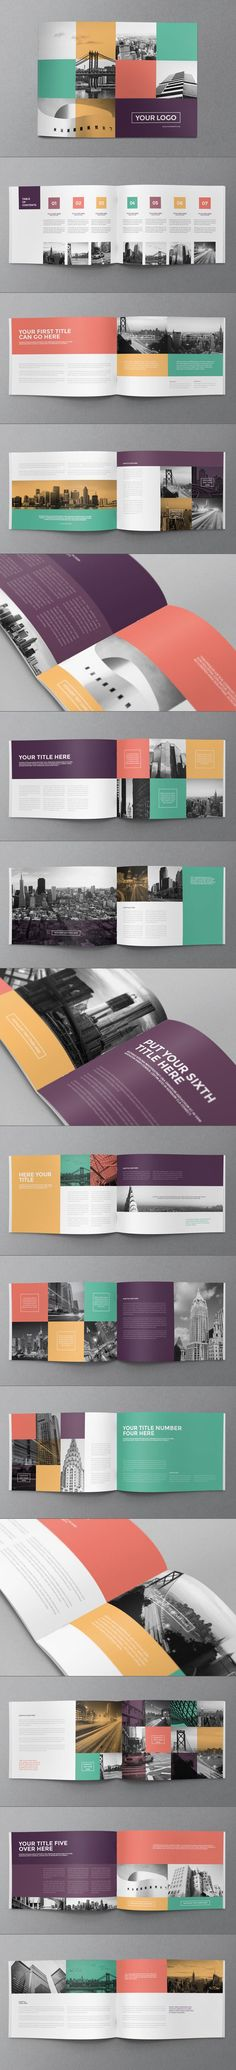 53 Pages Full Business Plan Template - A4 Portrait Portrait - hotel business plan template